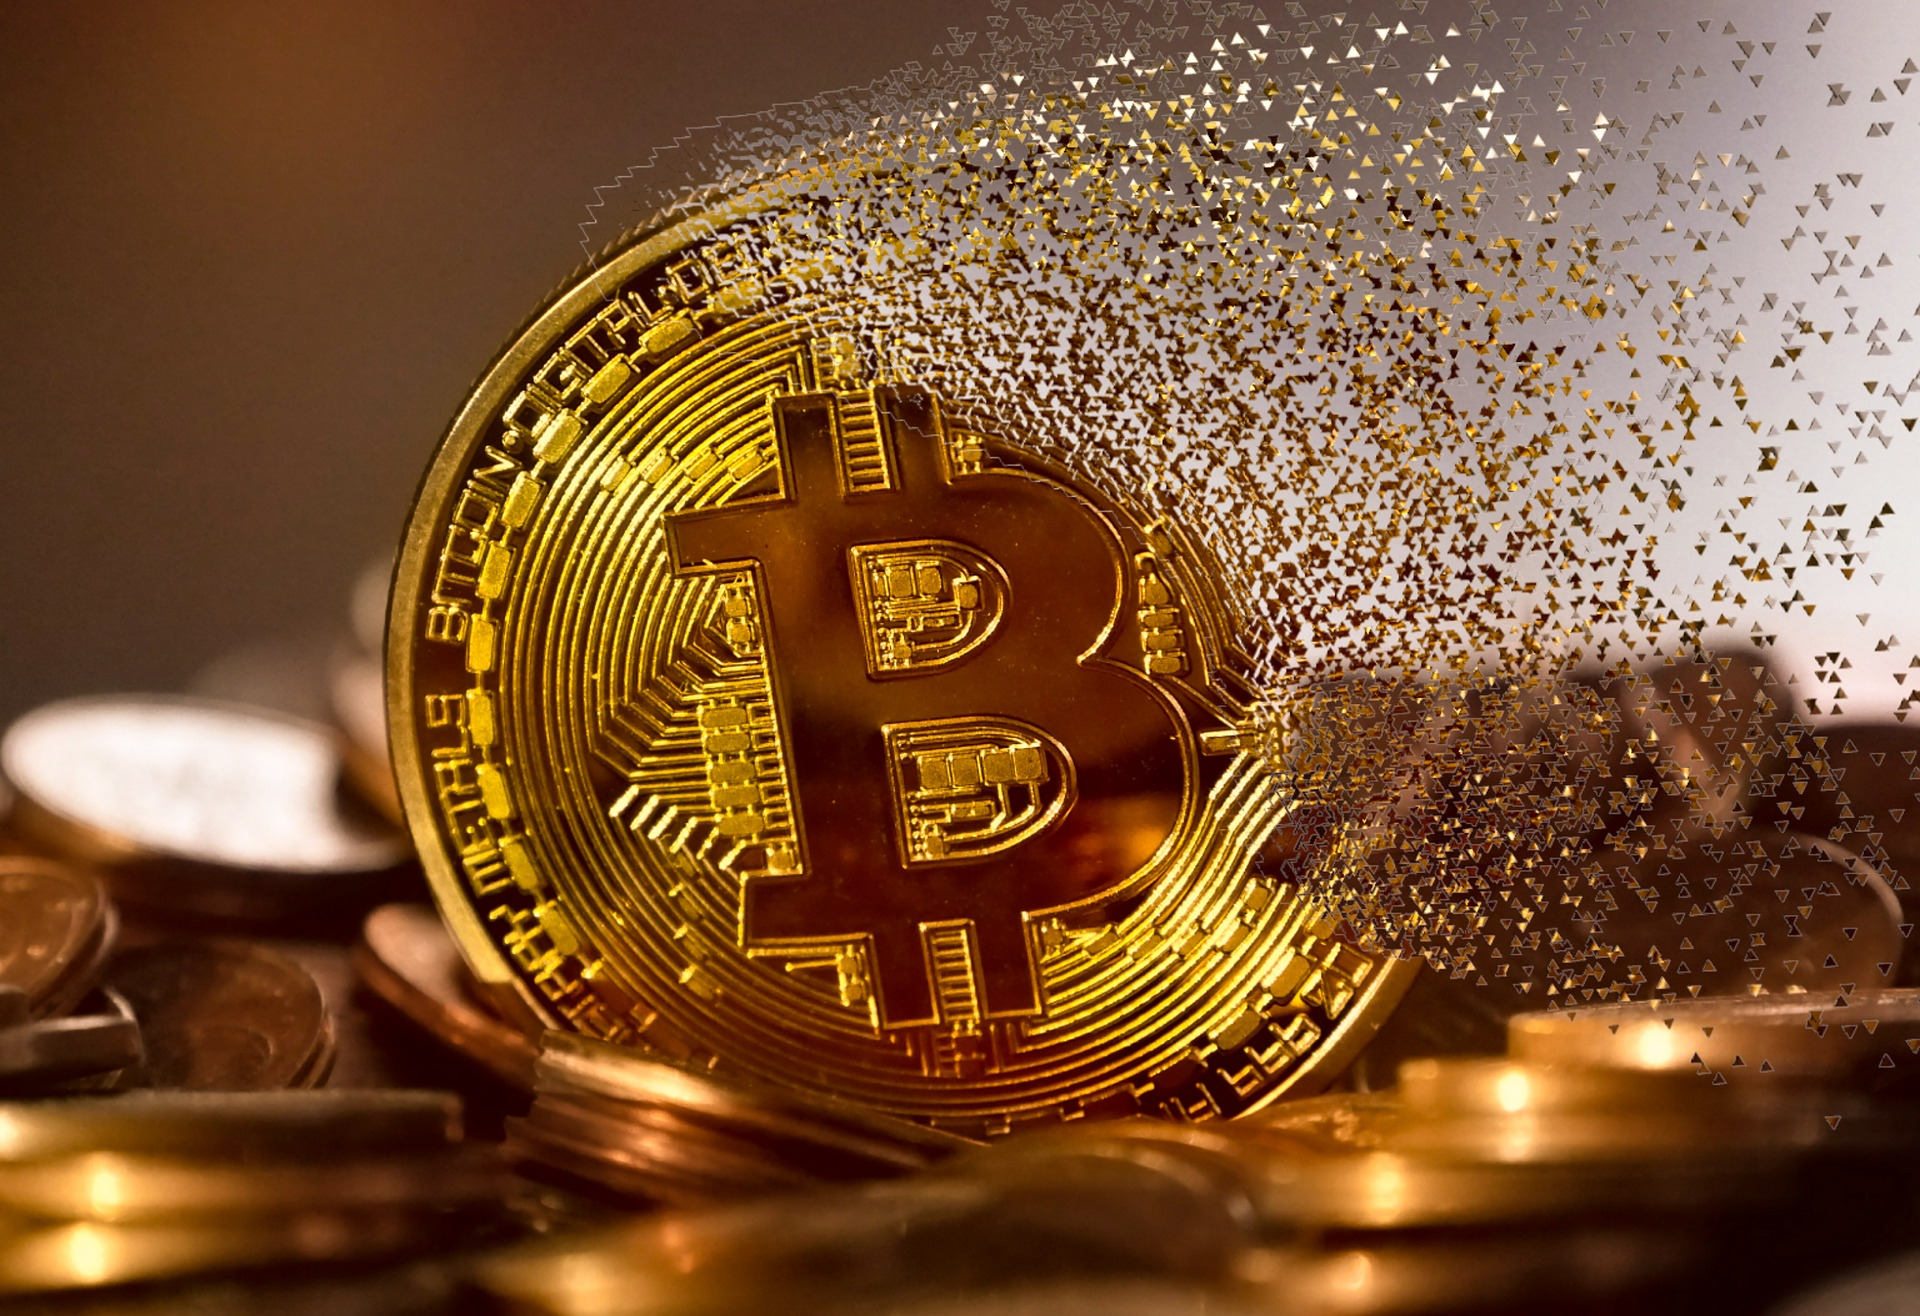 Bitcoin price (BTC/USD) fights to stay above $3,400 following morning drop